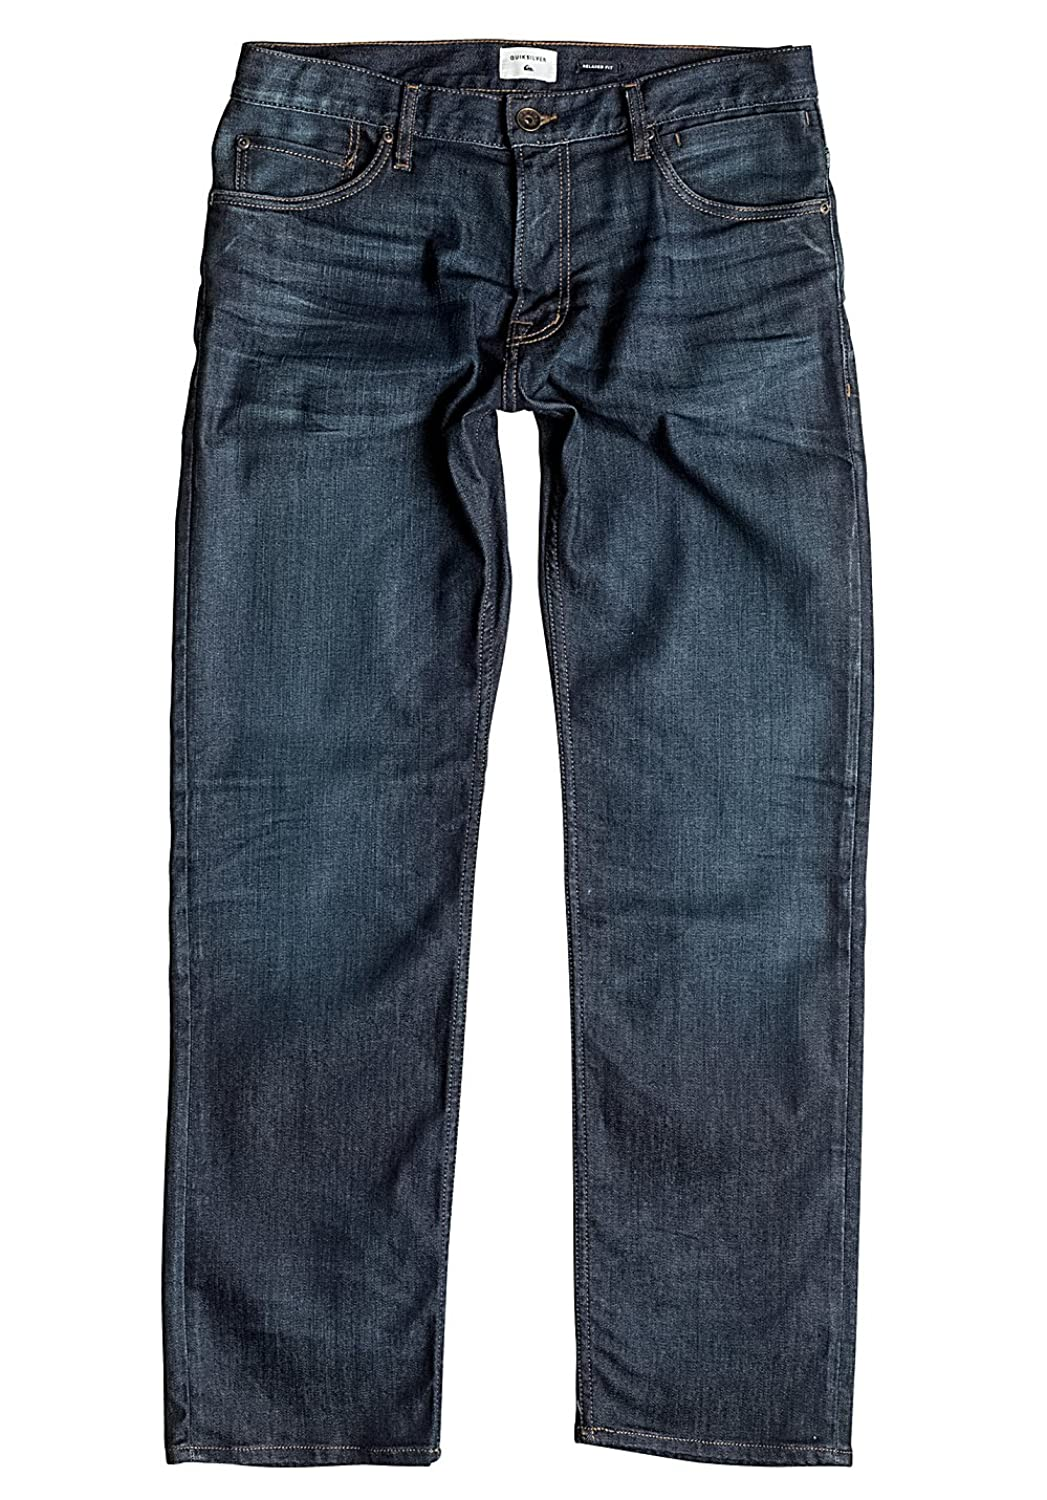 Herren Jeans Hose Quiksilver High Force Jeans